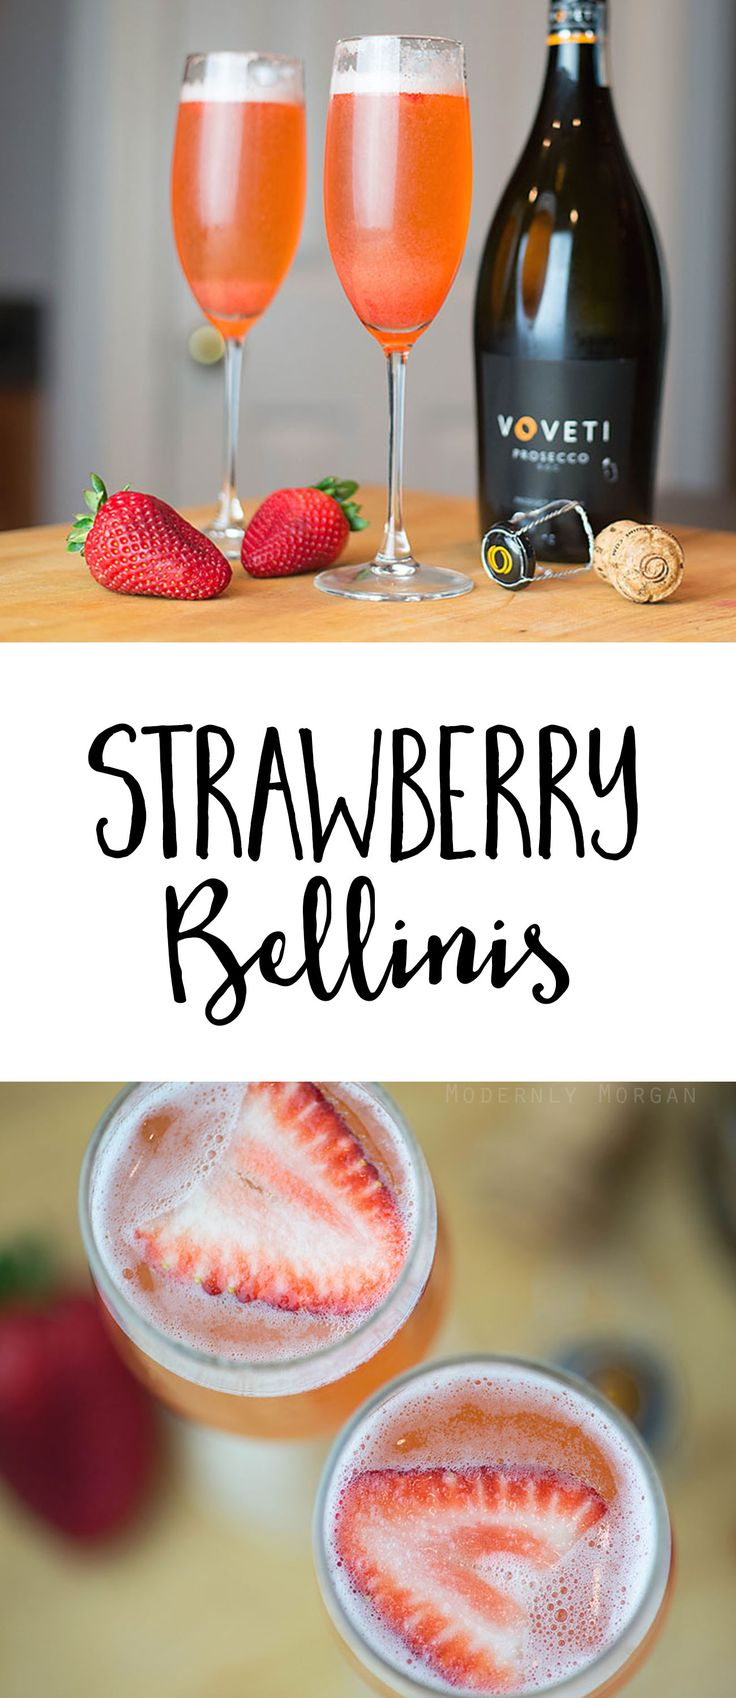 Strawberry Bellini Recipe - an easy to make and refreshing summer cocktail. Flavorful strawberry simple syrup paired with bubbly Prosecco makes for the perfect drink!